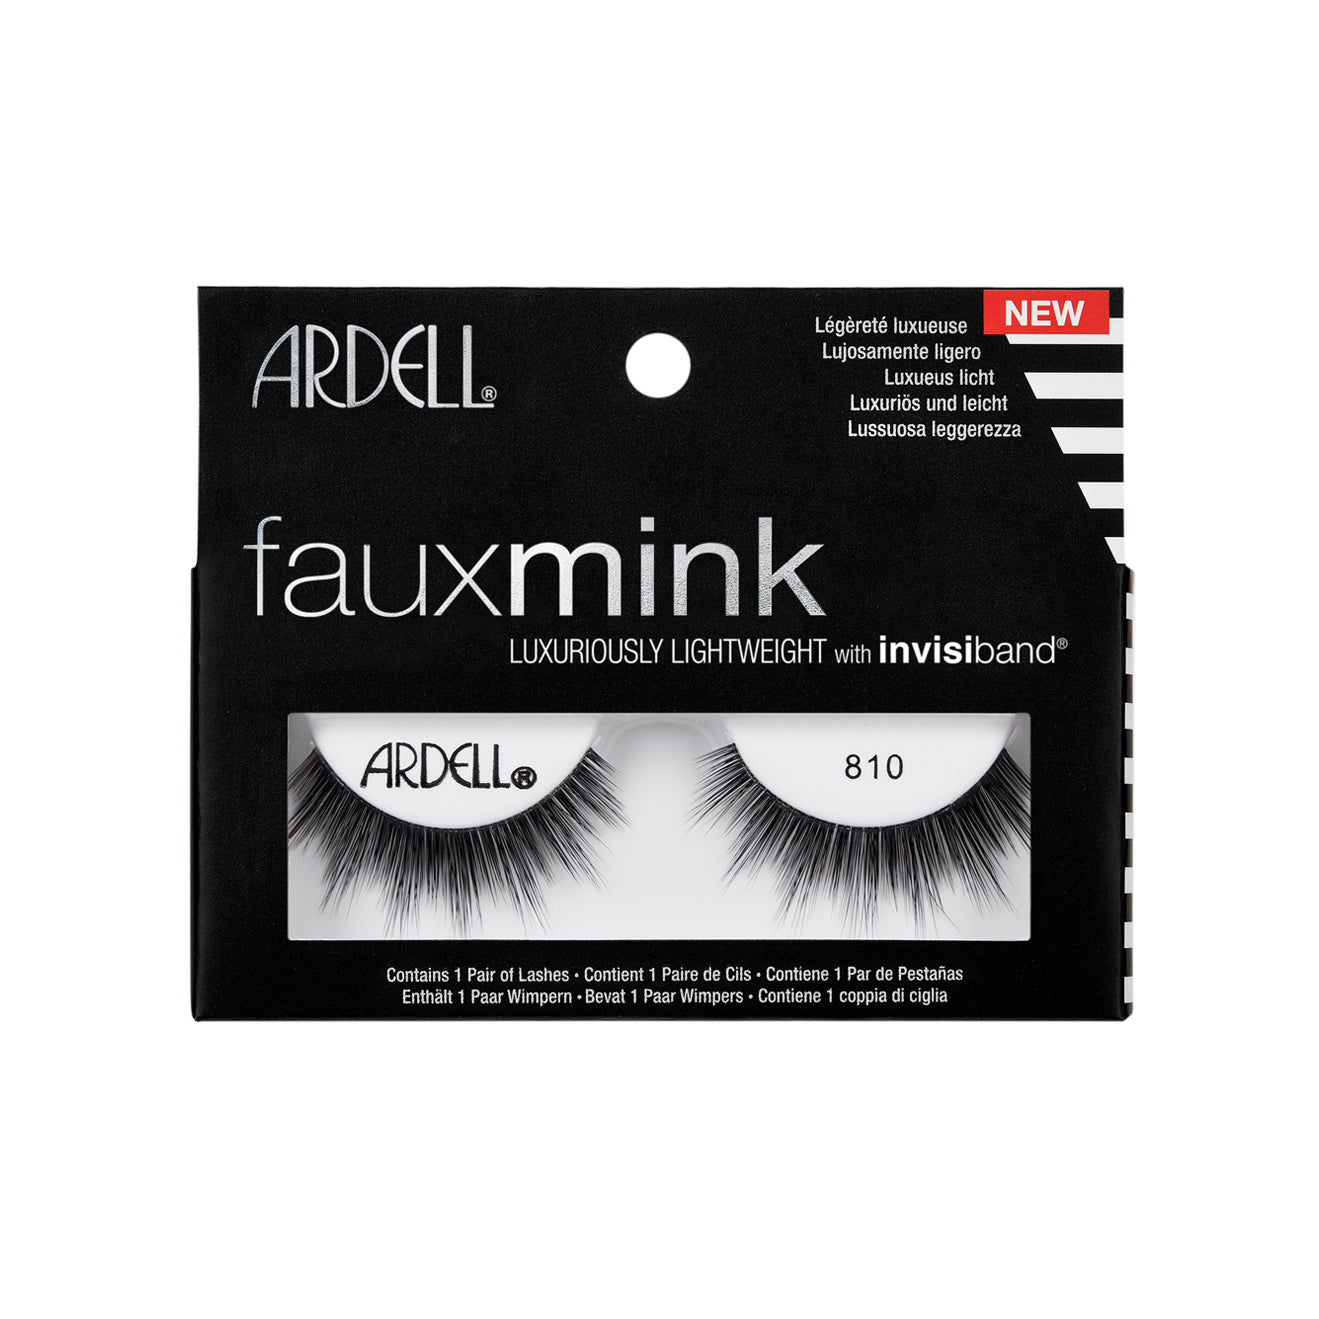 Ardell Faux Mink 810